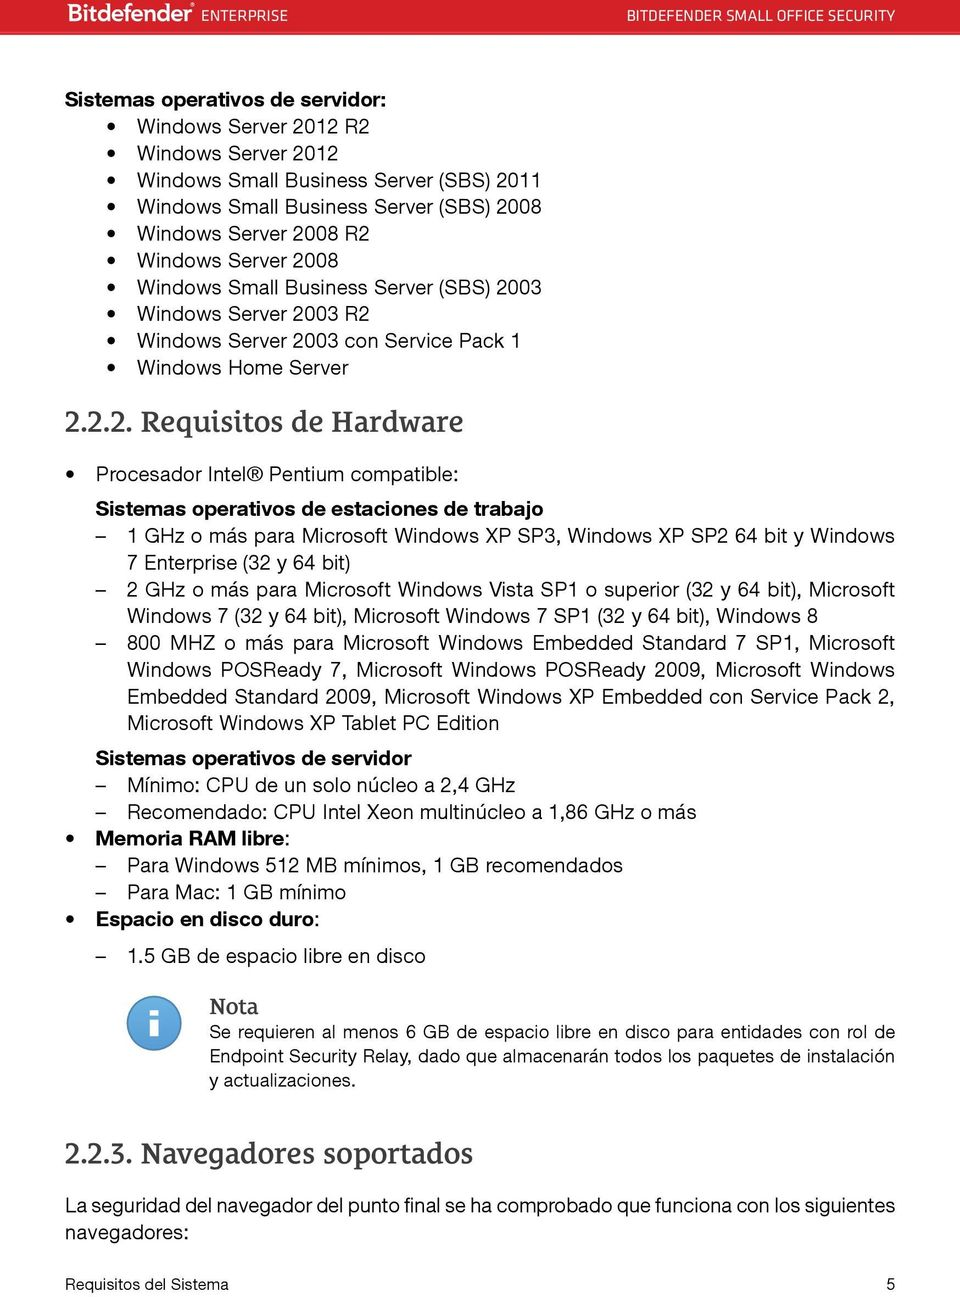 Sistemas operativos de estaciones de trabajo 1 GHz o más para Microsoft Windows XP SP3, Windows XP SP2 64 bit y Windows 7 Enterprise (32 y 64 bit) 2 GHz o más para Microsoft Windows Vista SP1 o